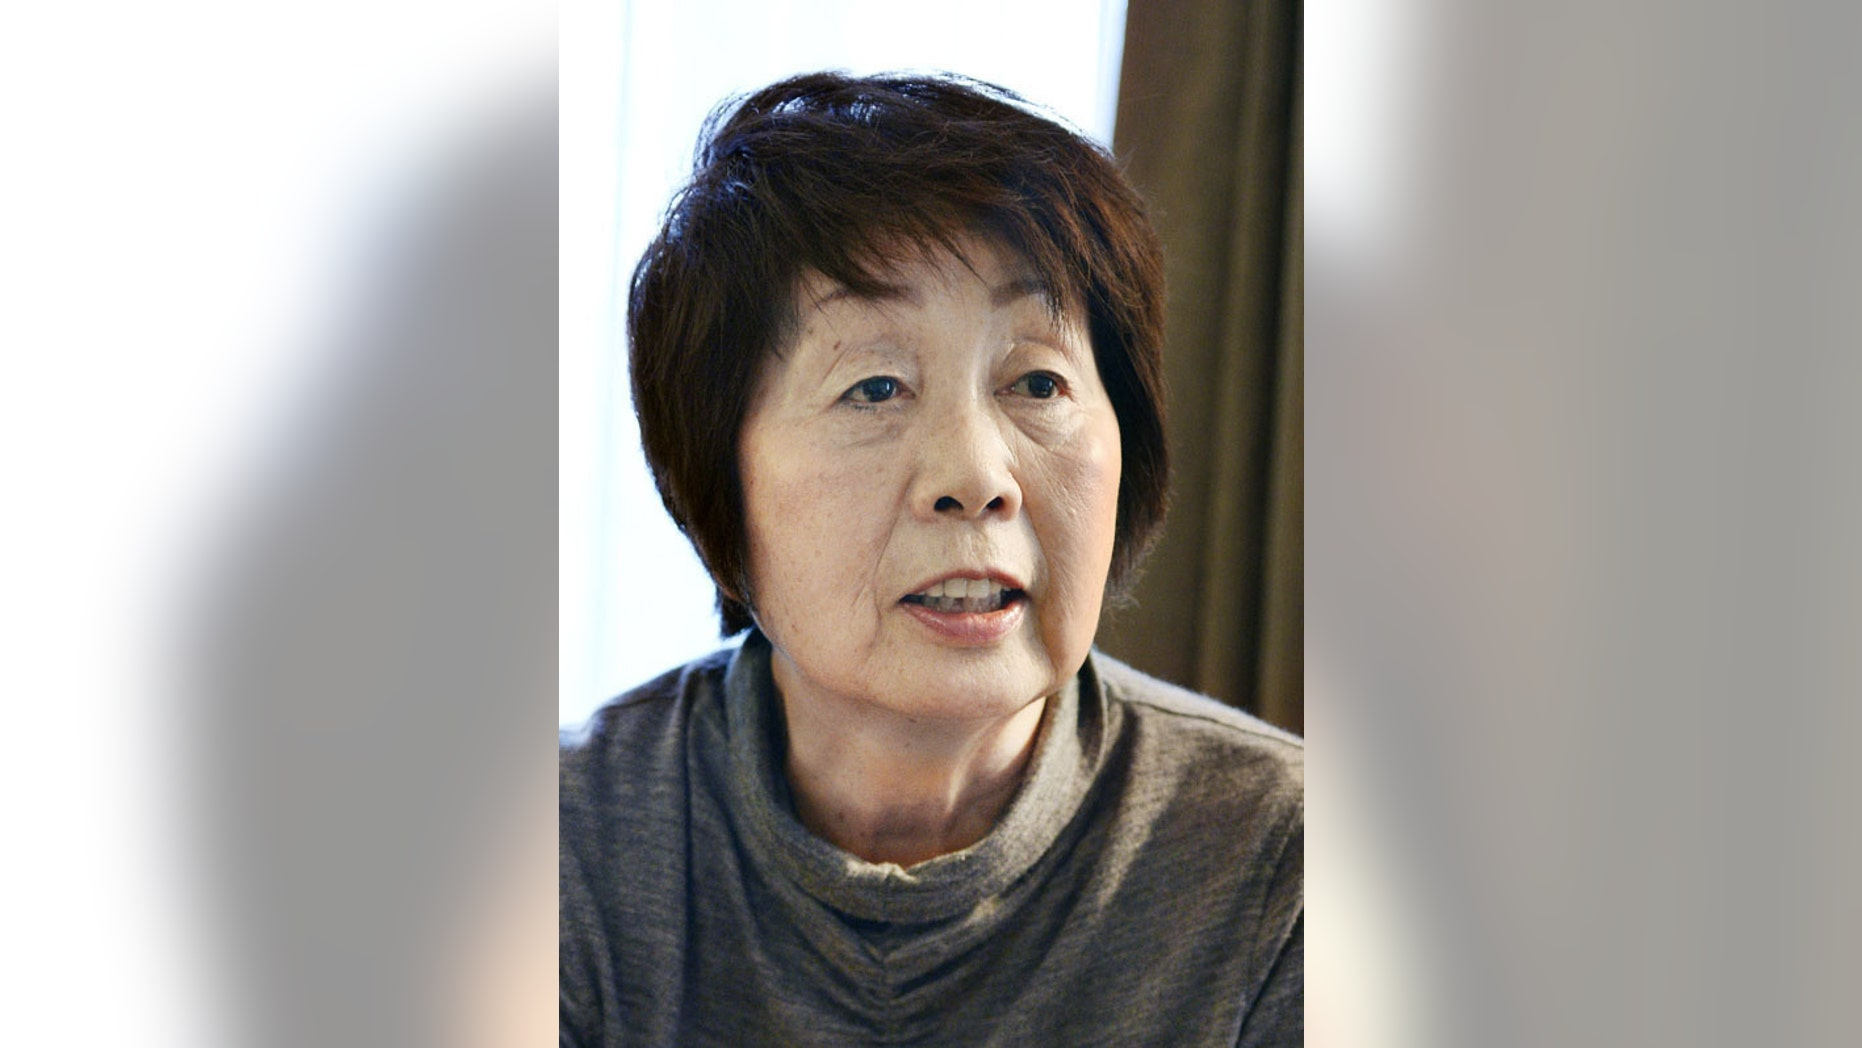 This undated photo shows Chisako Kakehi. Japanese prosecutors have charged 68-year-old Kakehi with murder, weeks after police arrested her on suspicion of poisoning her latest husband, one of six men who had died while in relationship with her over the past 20 years. Kakehi has denied responsibility in the deaths. Japanese public broadcaster NHK says Kyoto district prosecutors indicted Kakehi on Wednesday, Dec. 10 over the death of her 75-year-old husband, Isao. (AP Photo/Kyodo News) JAPAN OUT, CREDIT MANDATORY